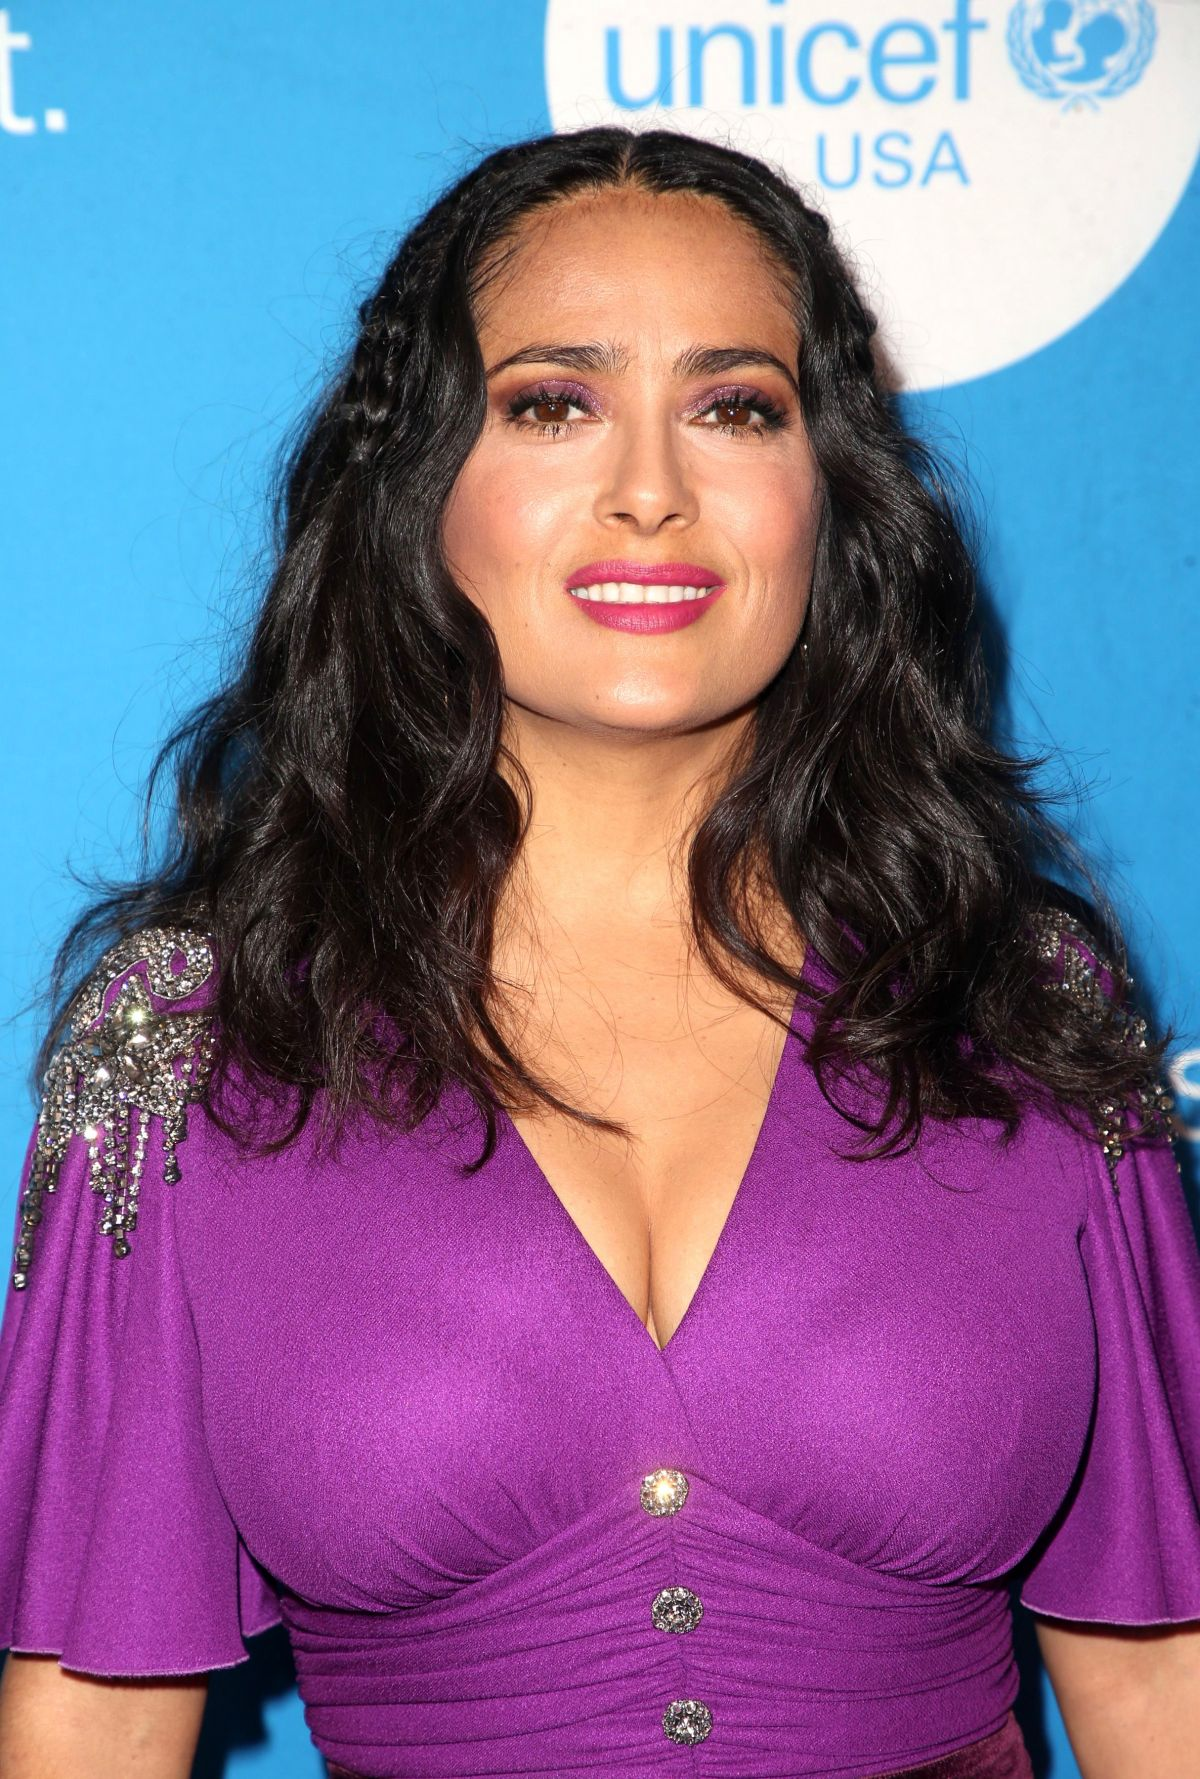 SALMA HAYEK at Unicef Ball in Los Angeles 04/14/2018 ... Salma Hayek